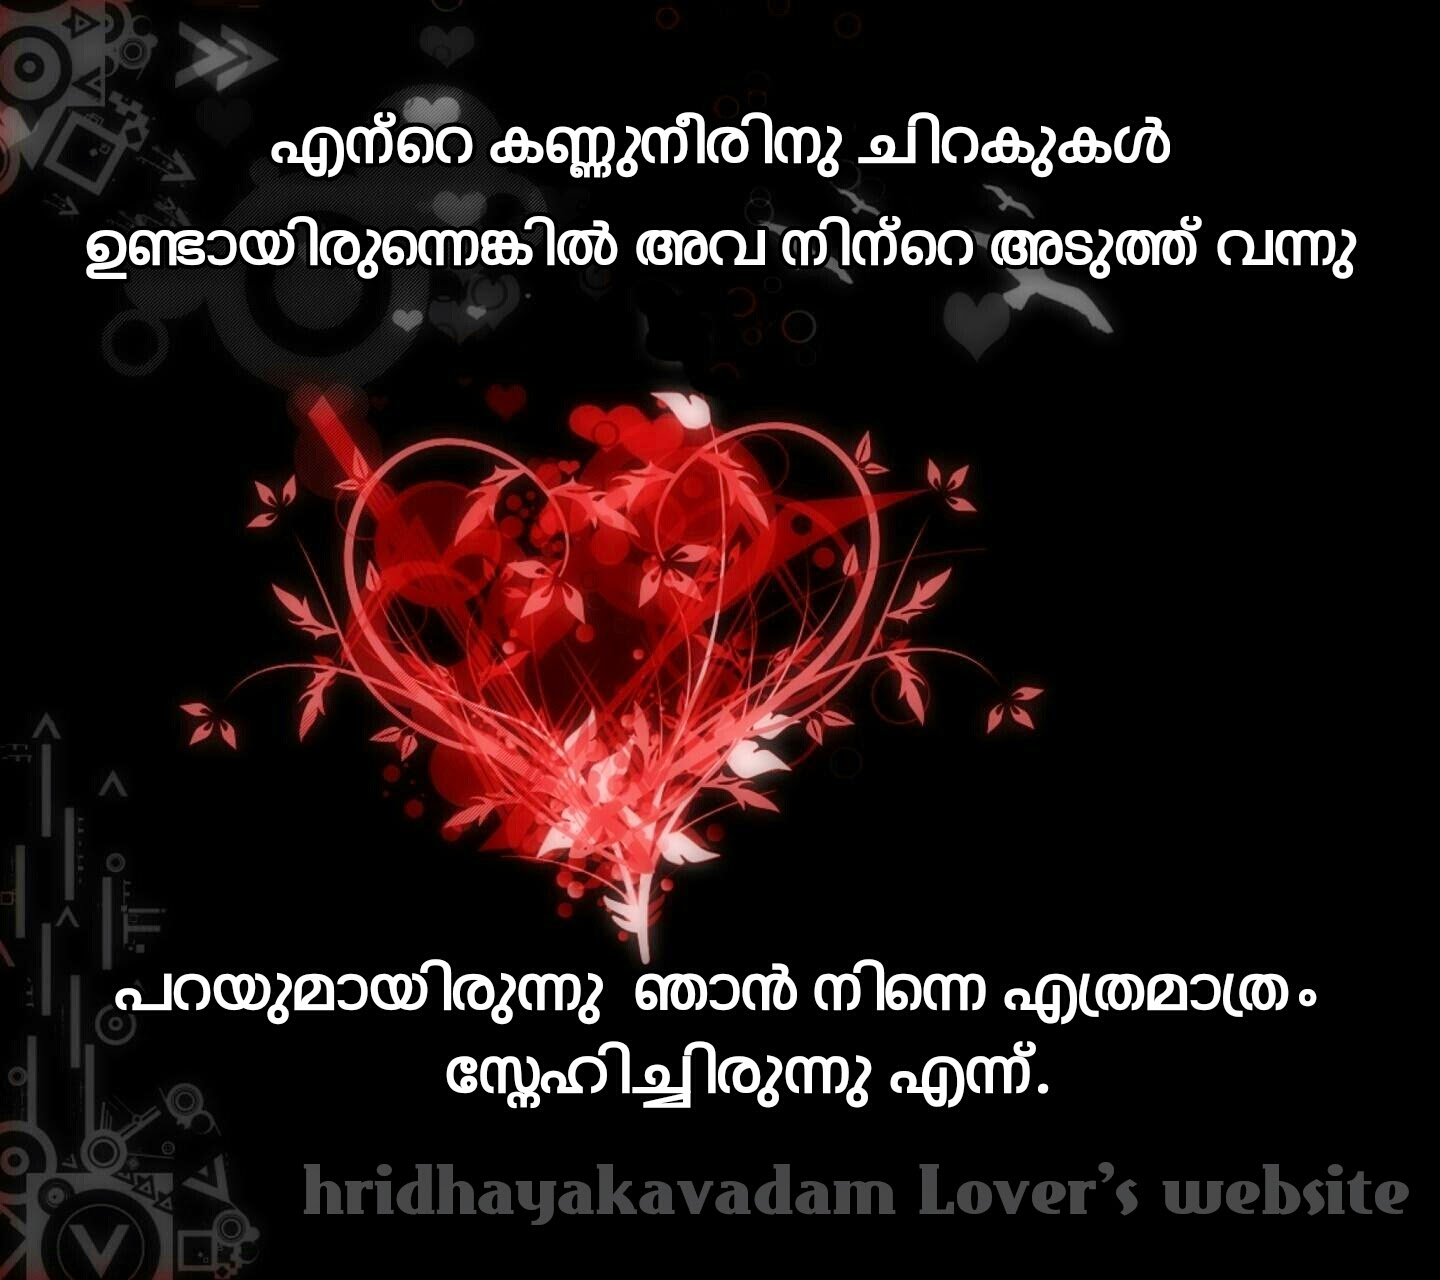 Malayalam Love Quotes New Hridhayakavadam Quotes